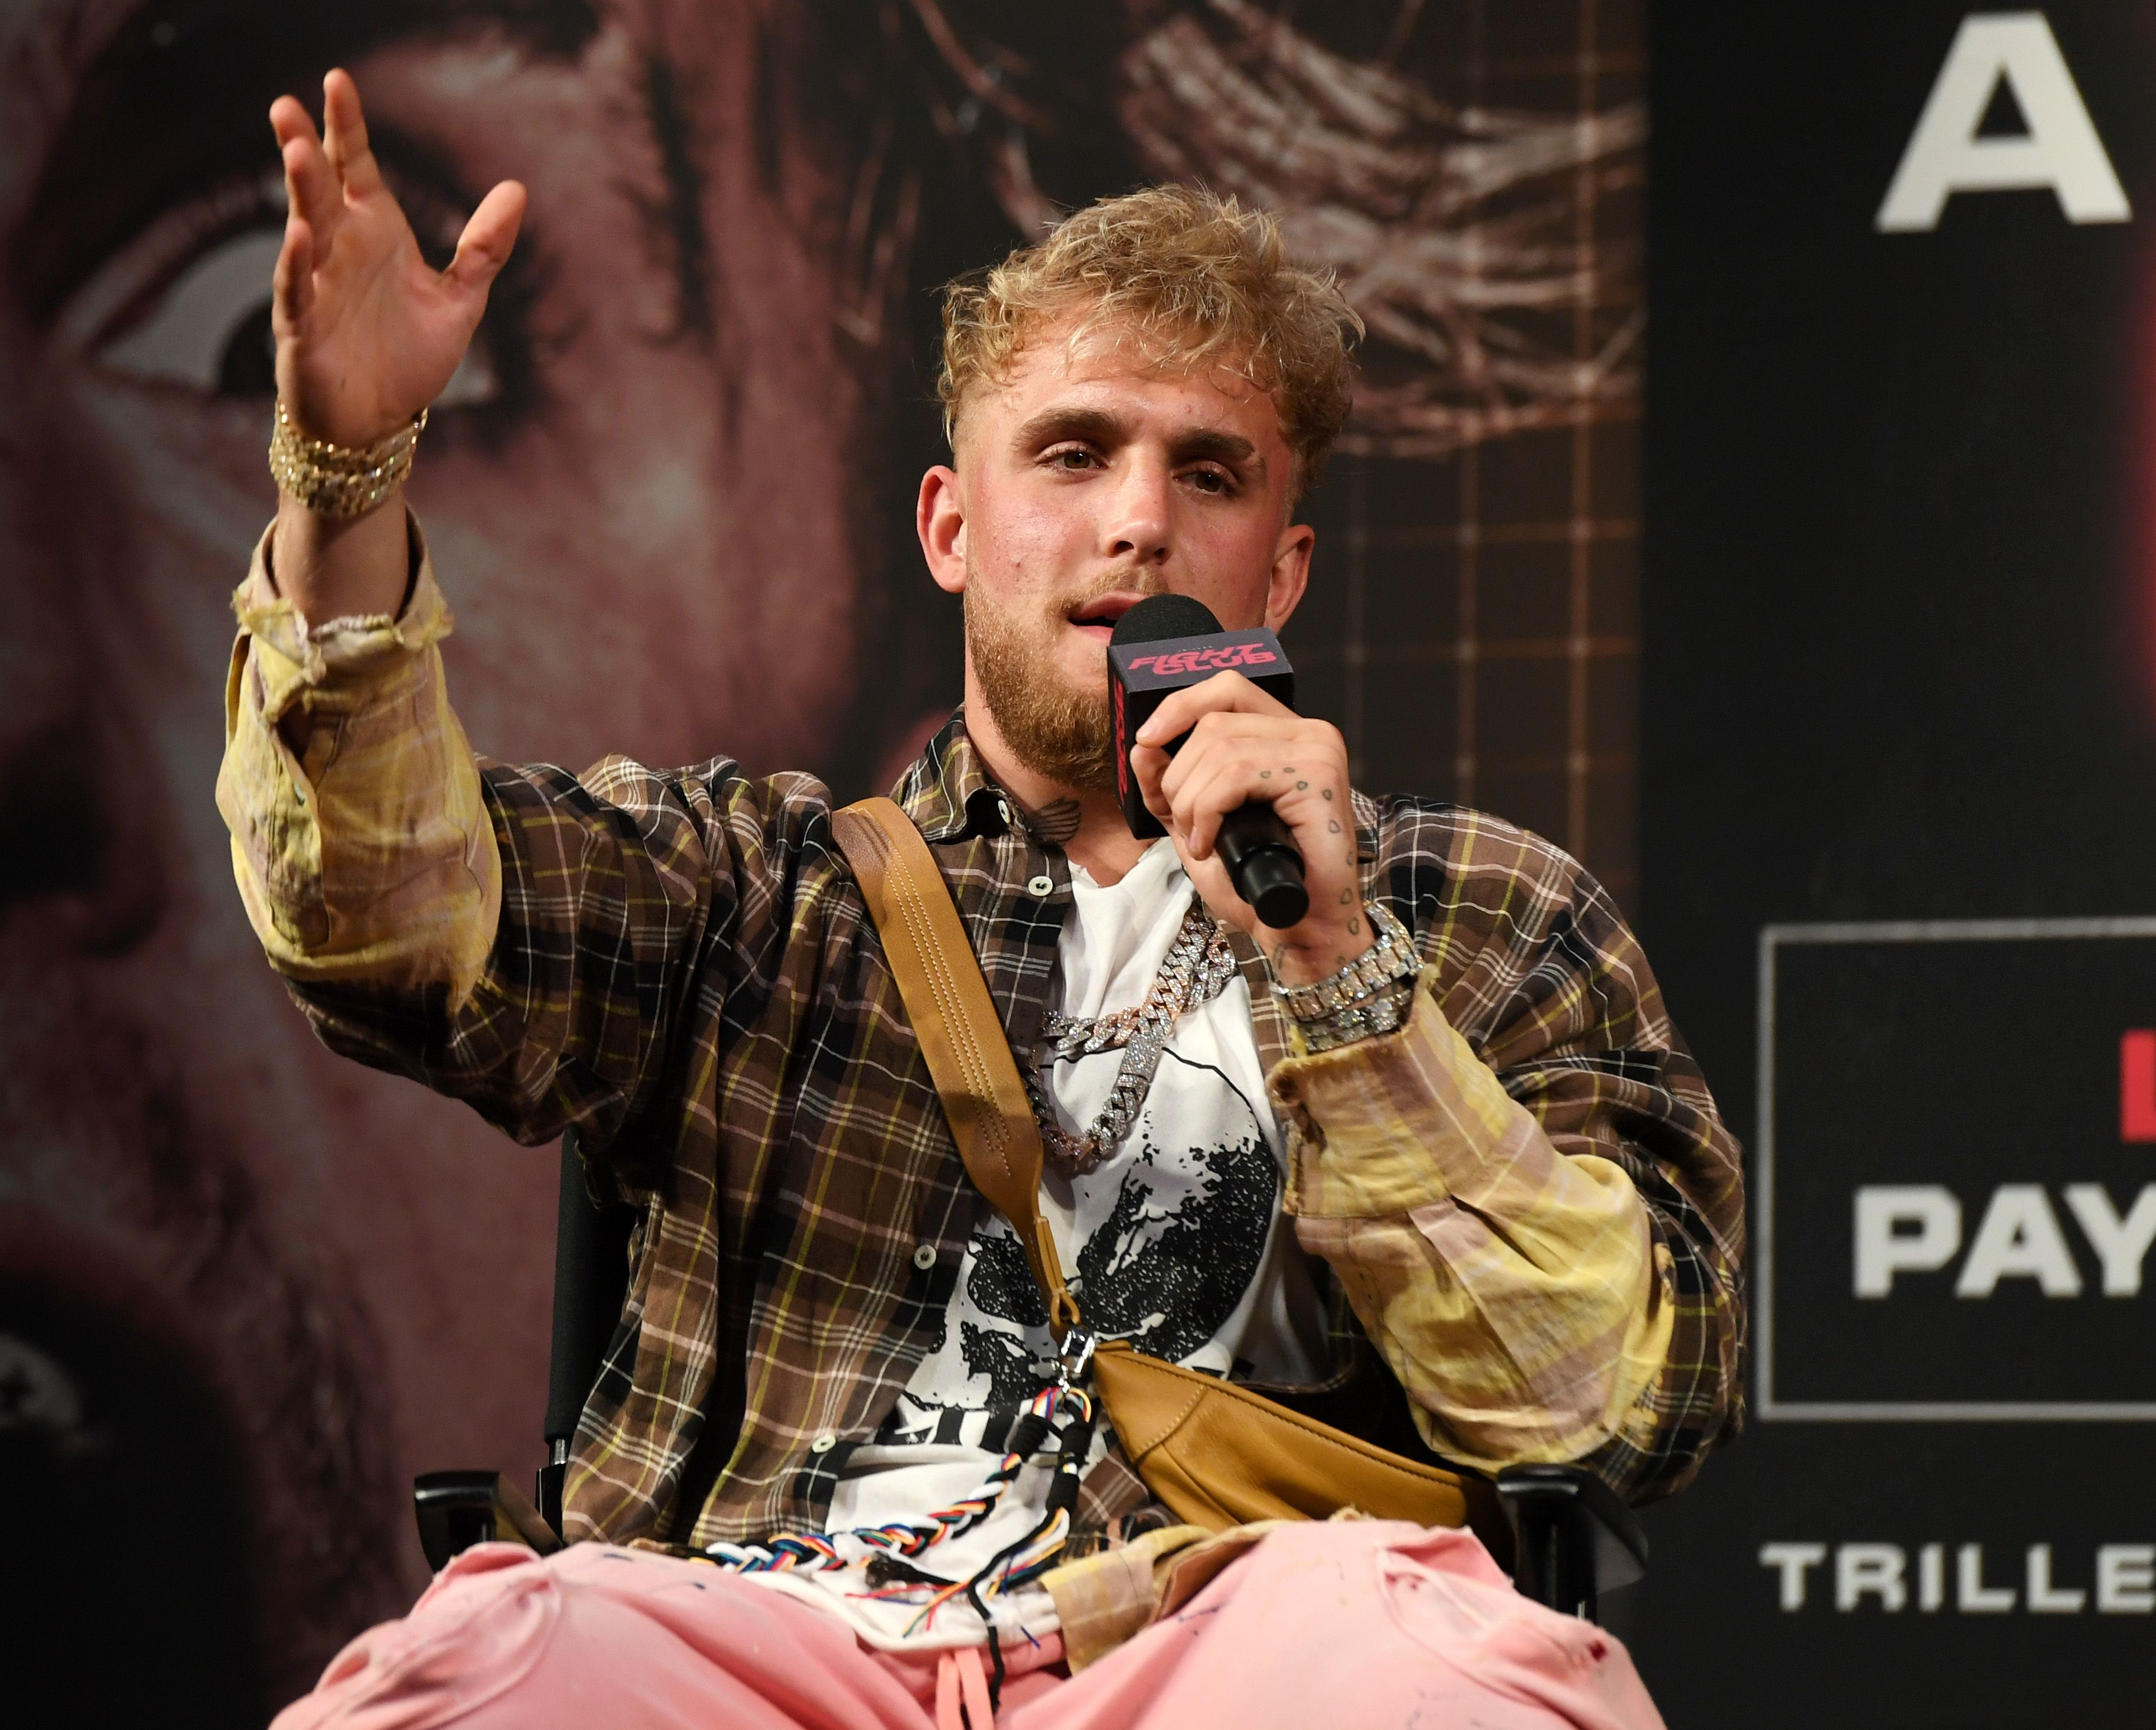 Jake Paul speaks at an event promoting his fight.